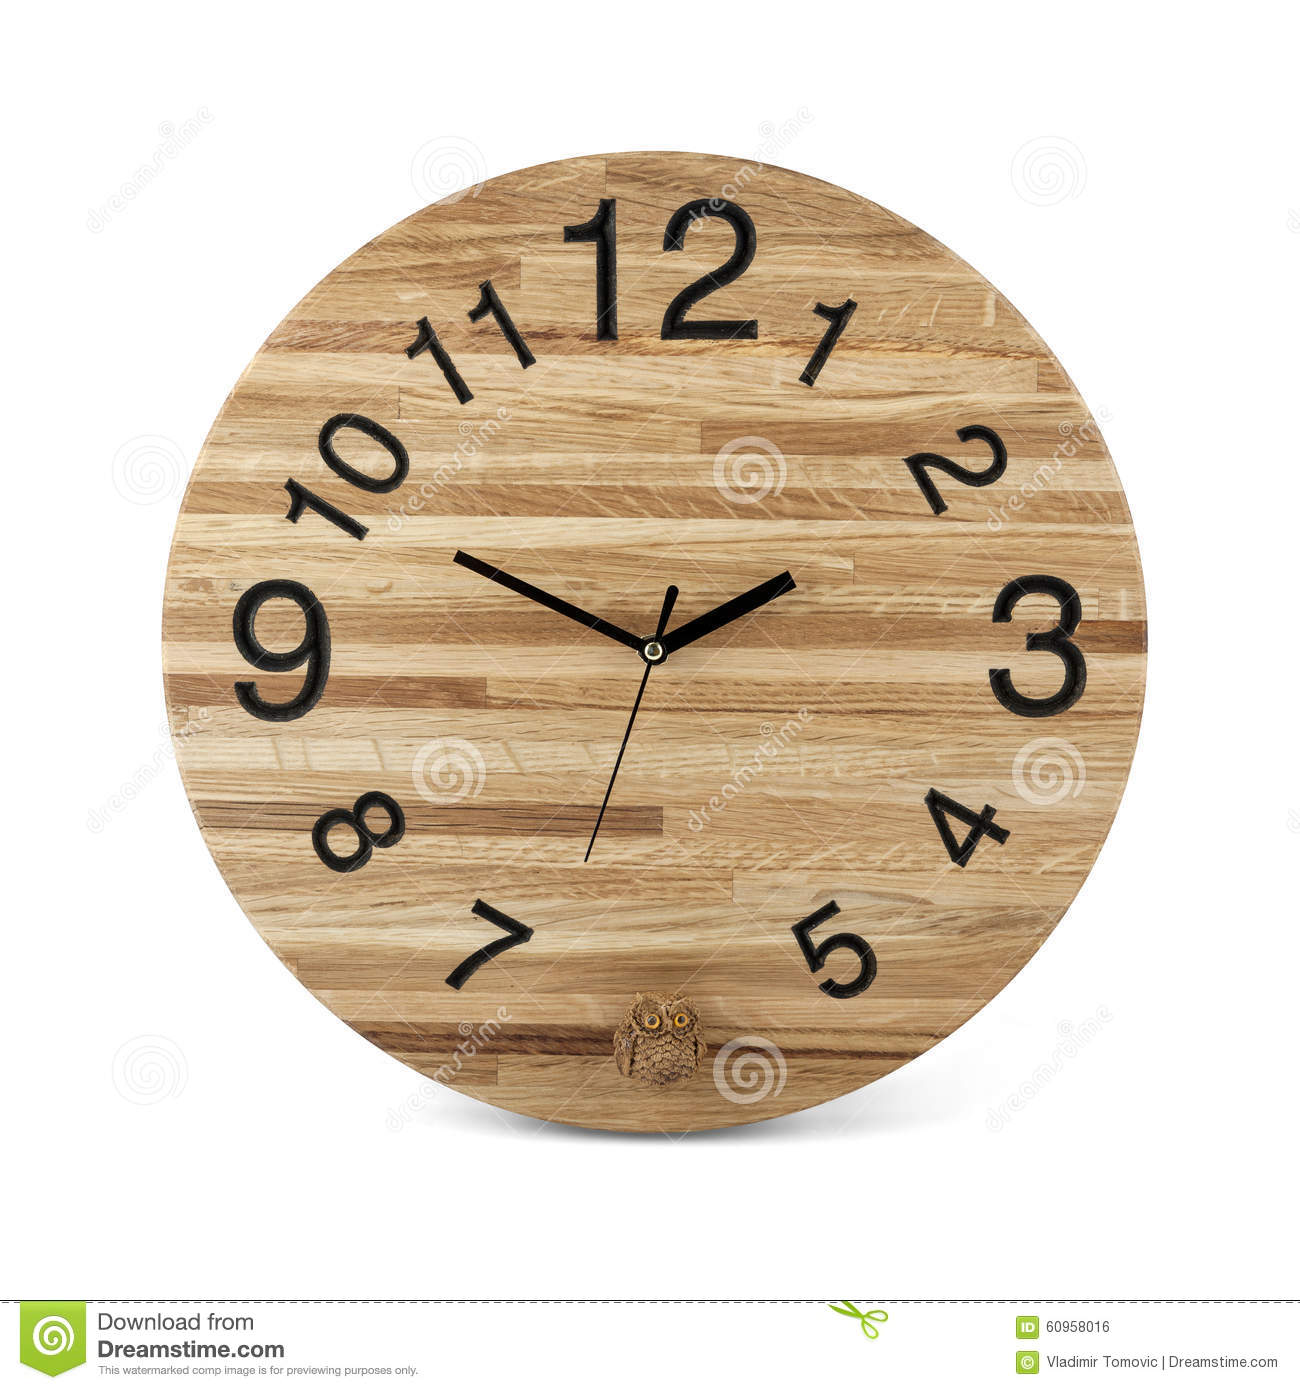 montre ronde en bois de mur avec le jouet de hibou horloge d 39 isolement sur b blanc photo stock. Black Bedroom Furniture Sets. Home Design Ideas